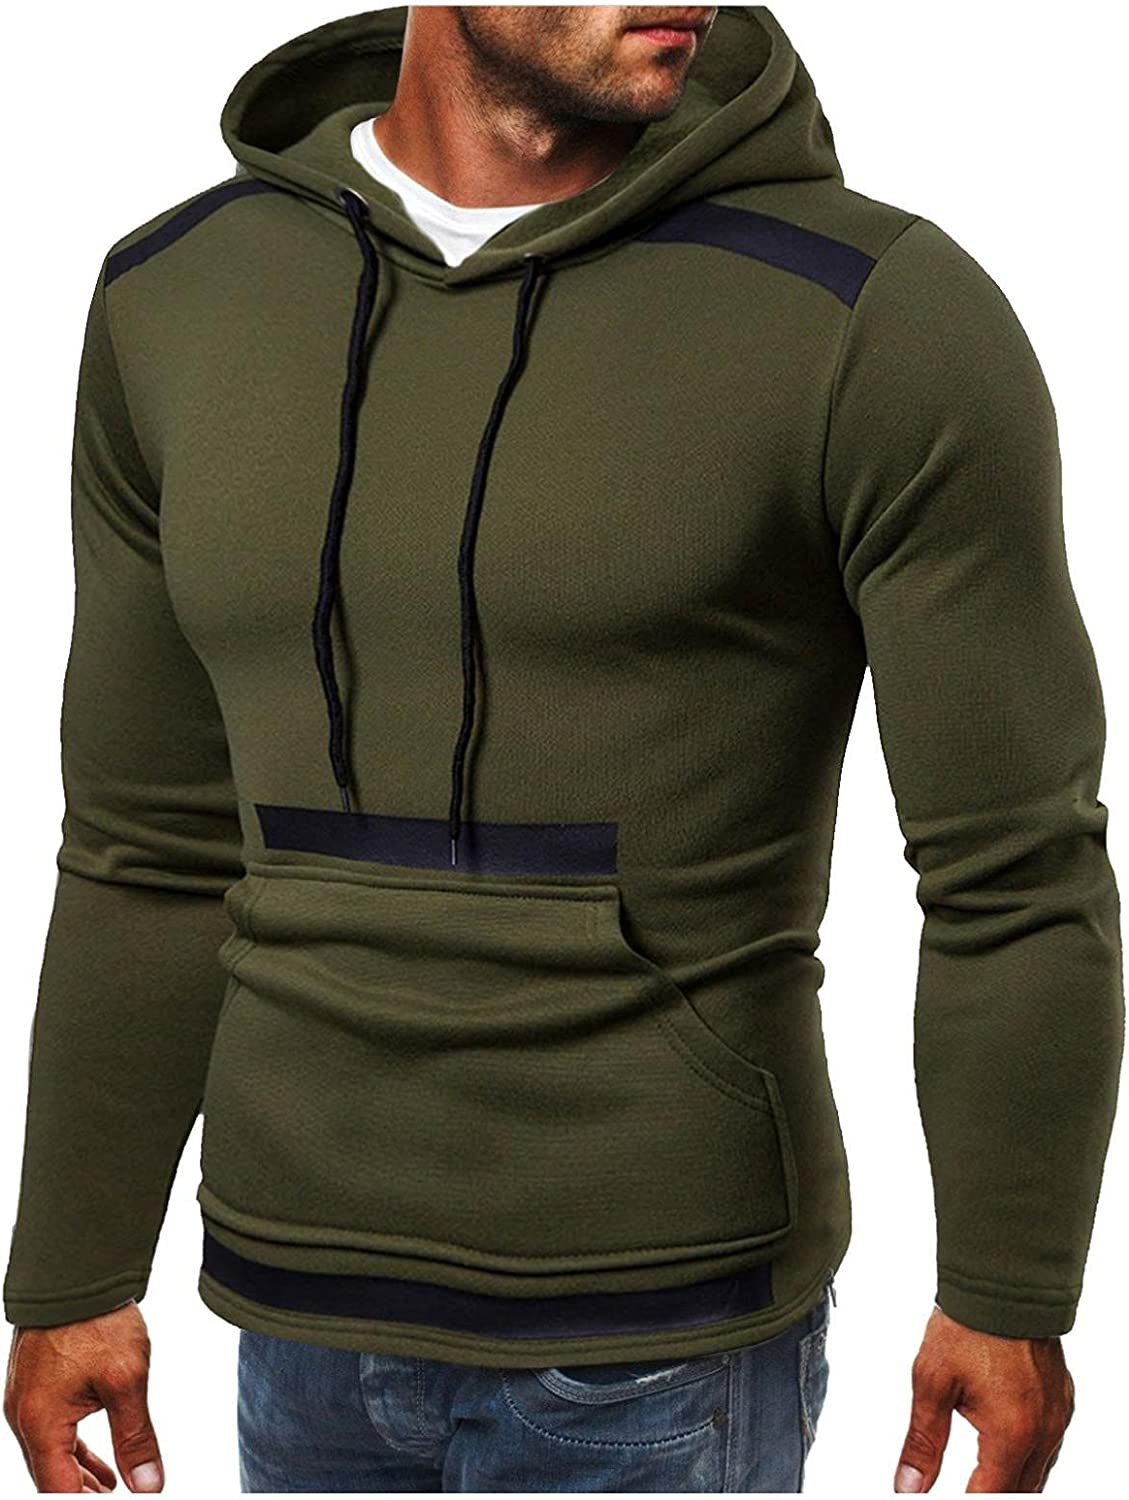 Aayomet Pullover Hoodies for Men Solid Long Sleeve Hooded Sweatshirts Casual Workout Sport Tops Sweaters Blouses